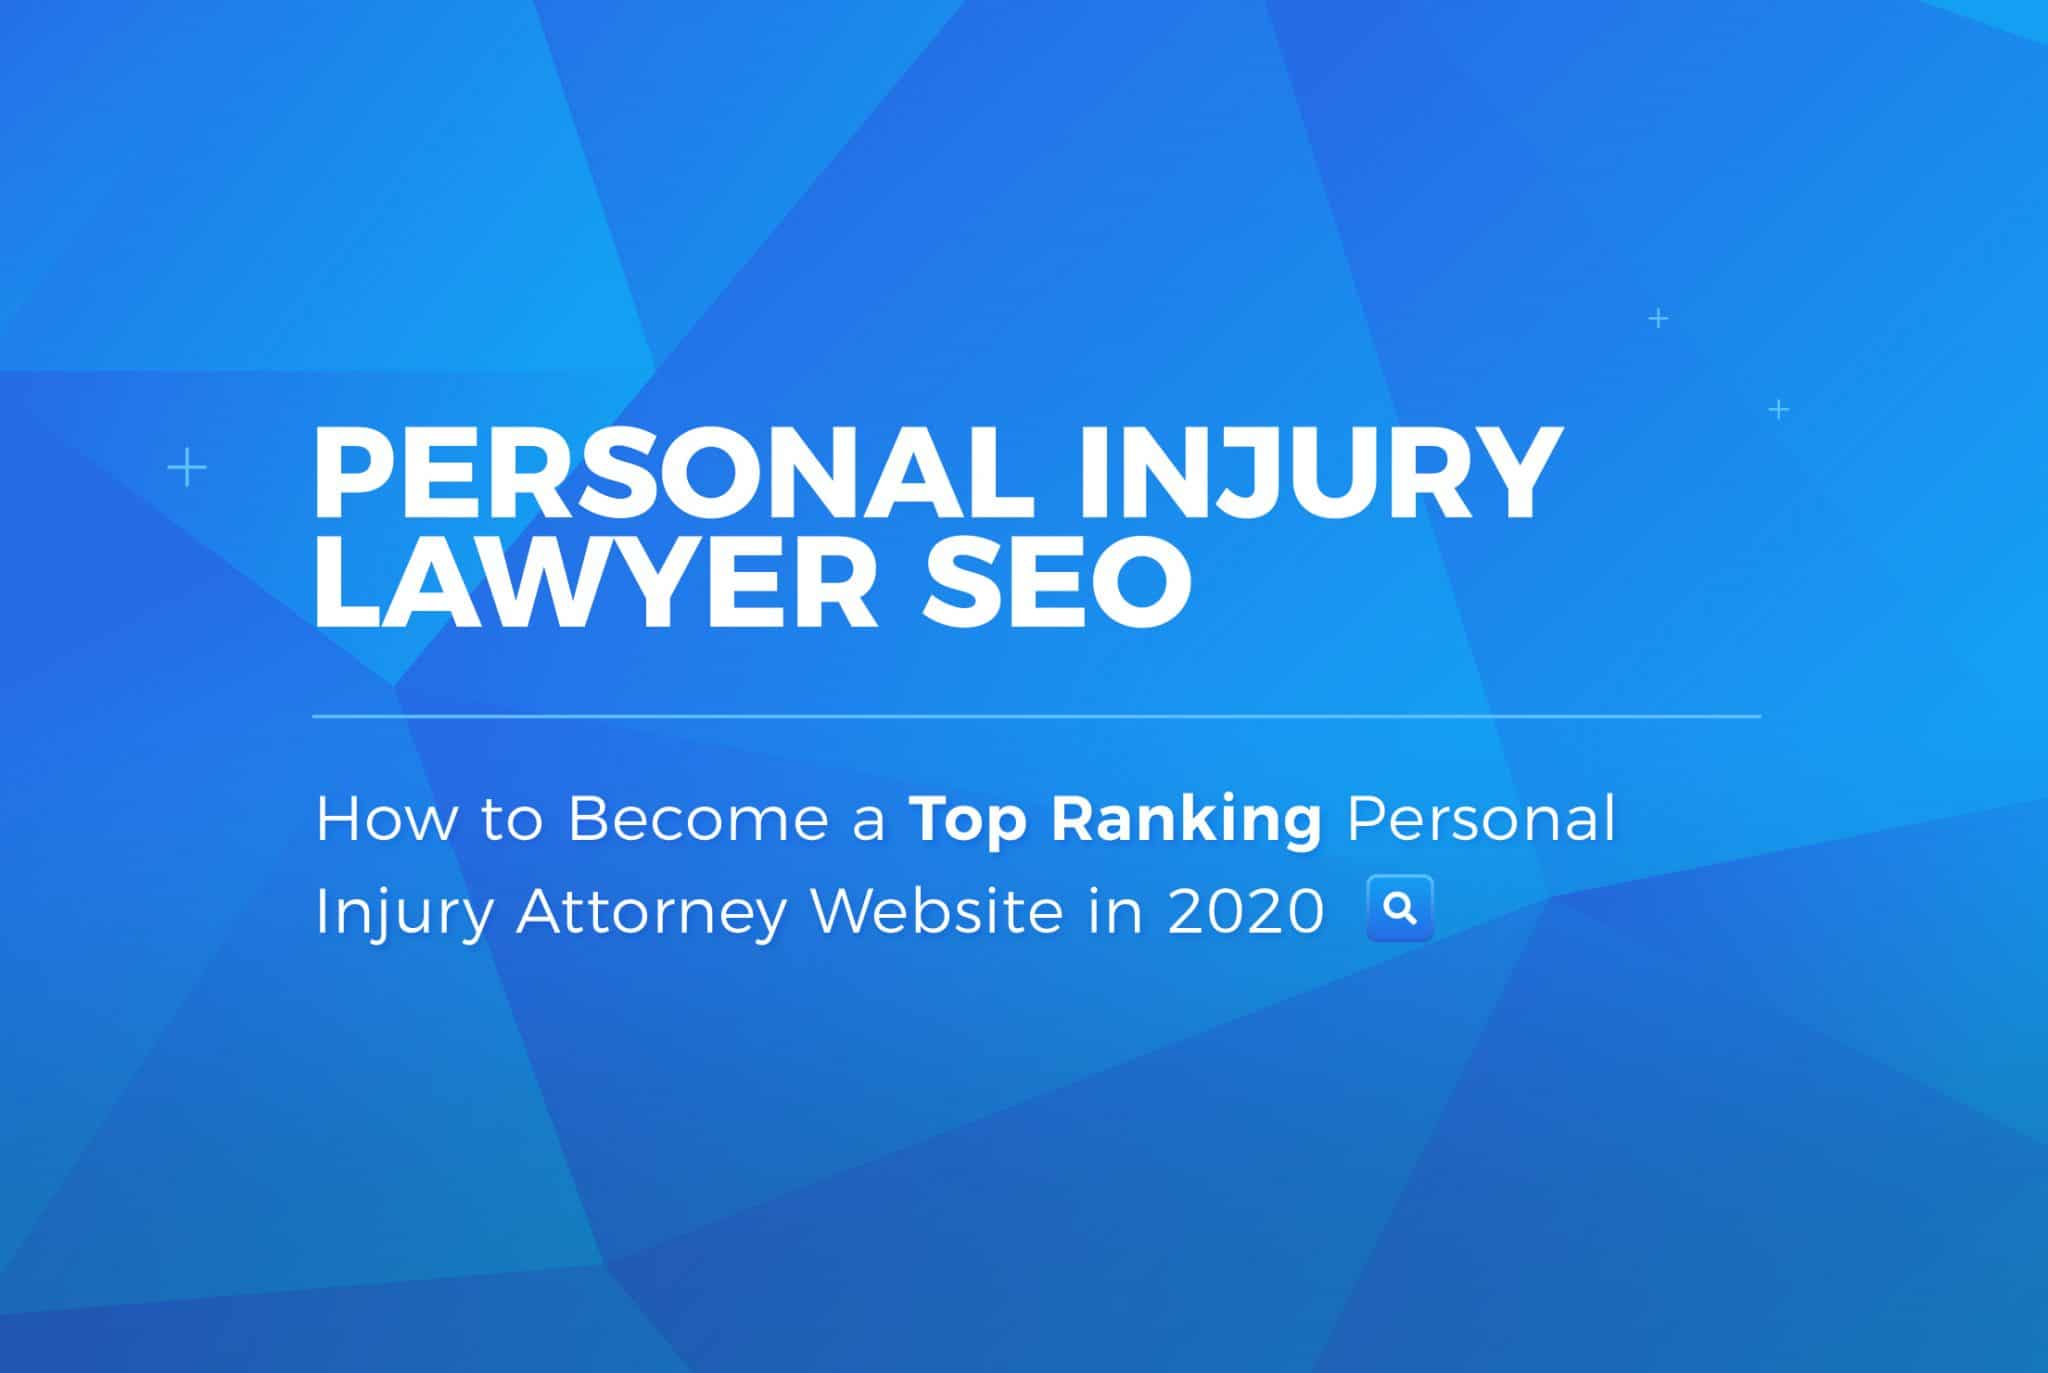 Personal Injury Lawyer SEO: How to Become a Top Ranking Personal Injury Attorney Website in 2020